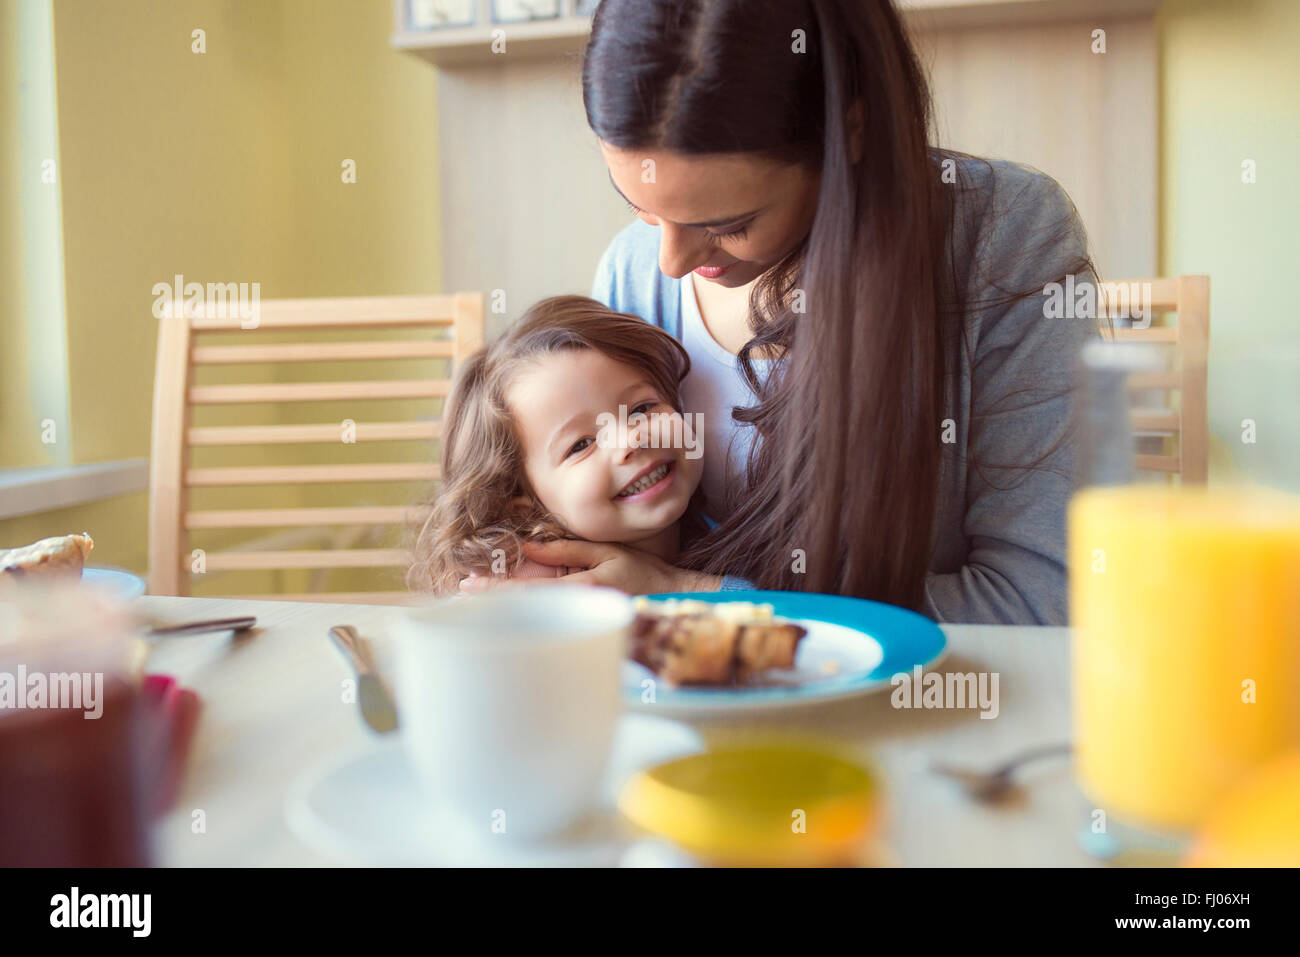 Portrait of smiling little girl and her mother at breakfast table Stock Photo